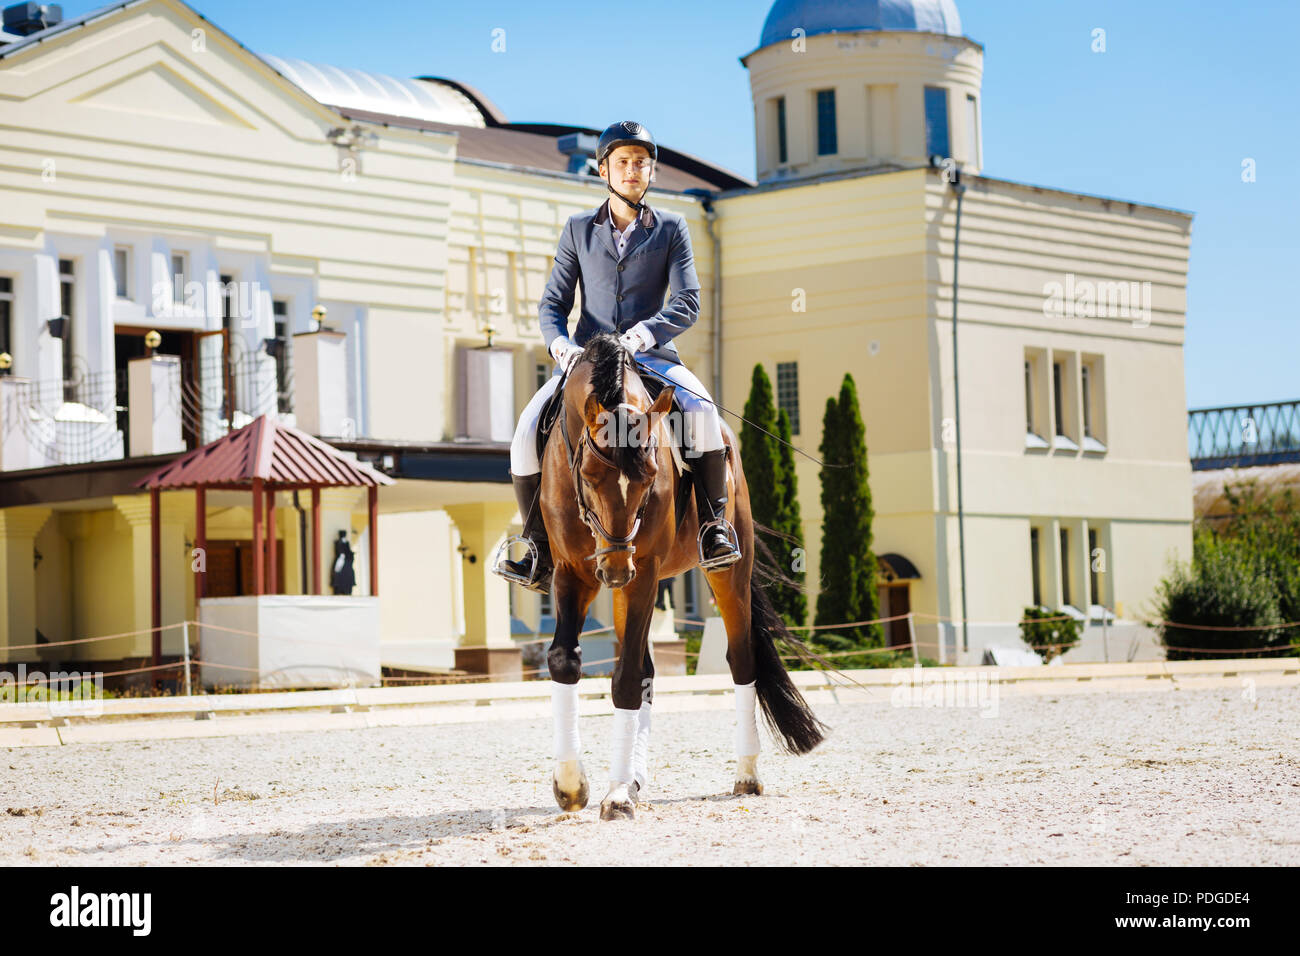 Professional experienced equestrian sitting on tired brown horse - Stock Image